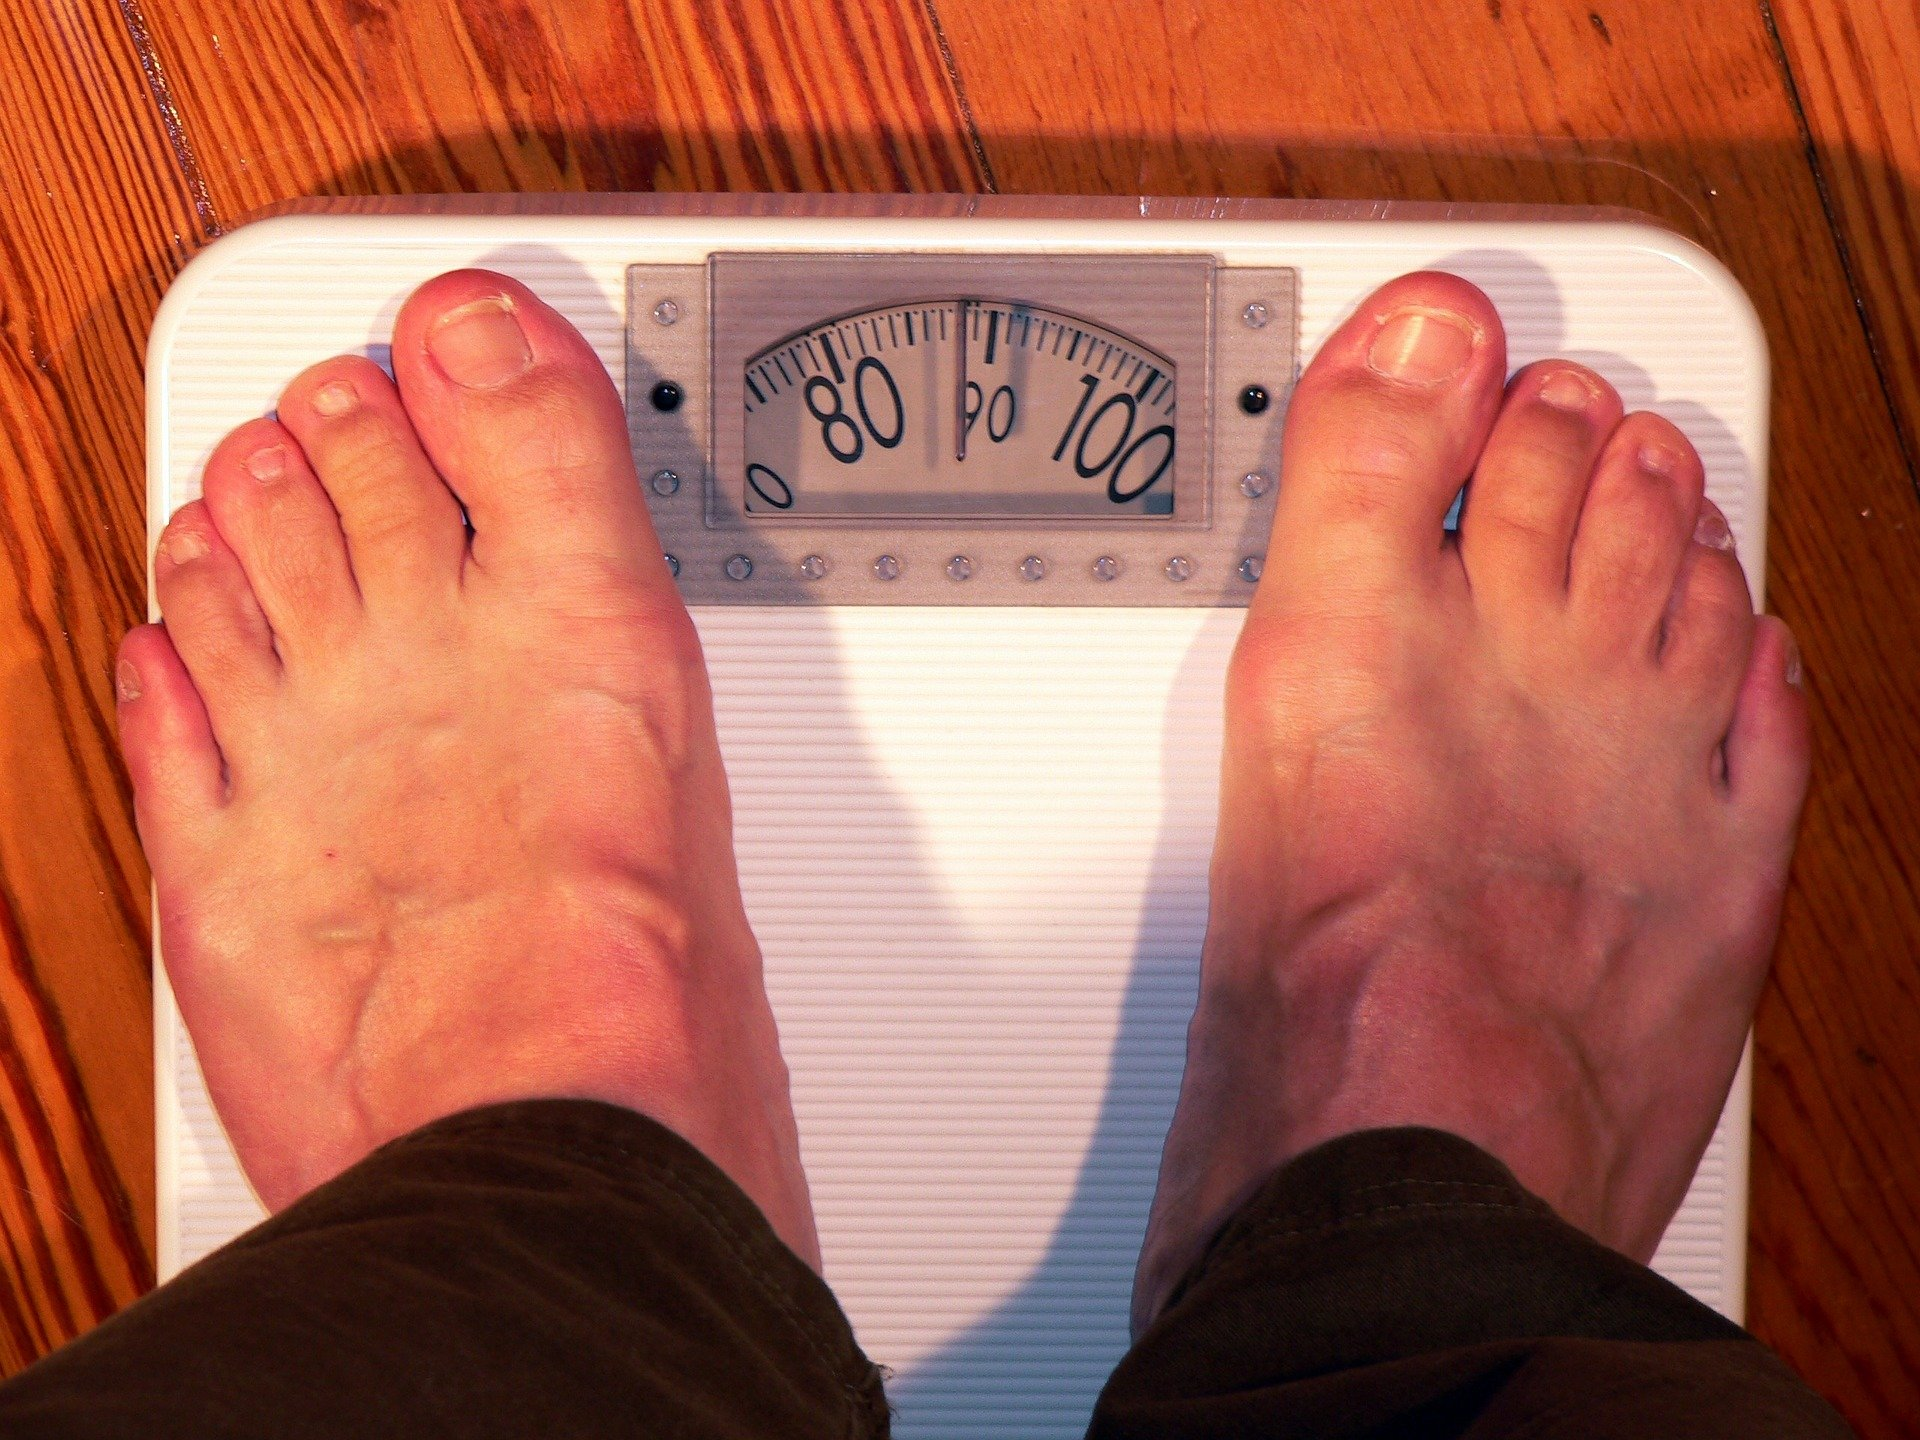 A man on a scale checking out his weight | Photo: Pixabay